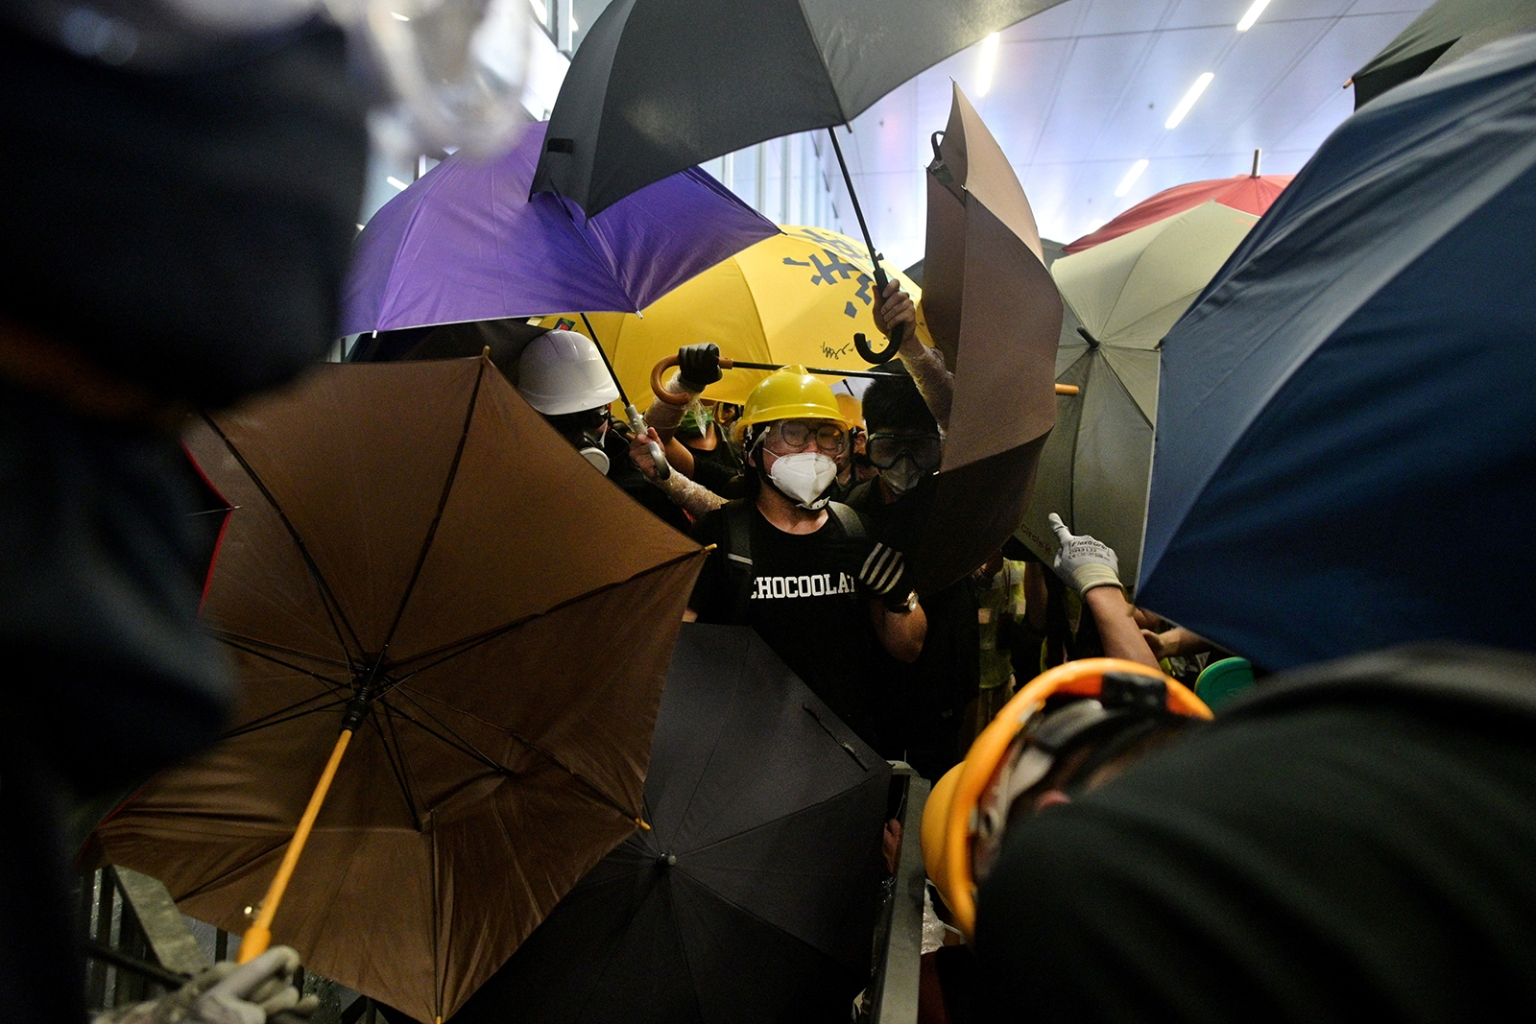 Protesters attempt to smash windows at the government headquarters in Hong Kong on July 1. ANTHONY WALLACE/AFP/Getty Images